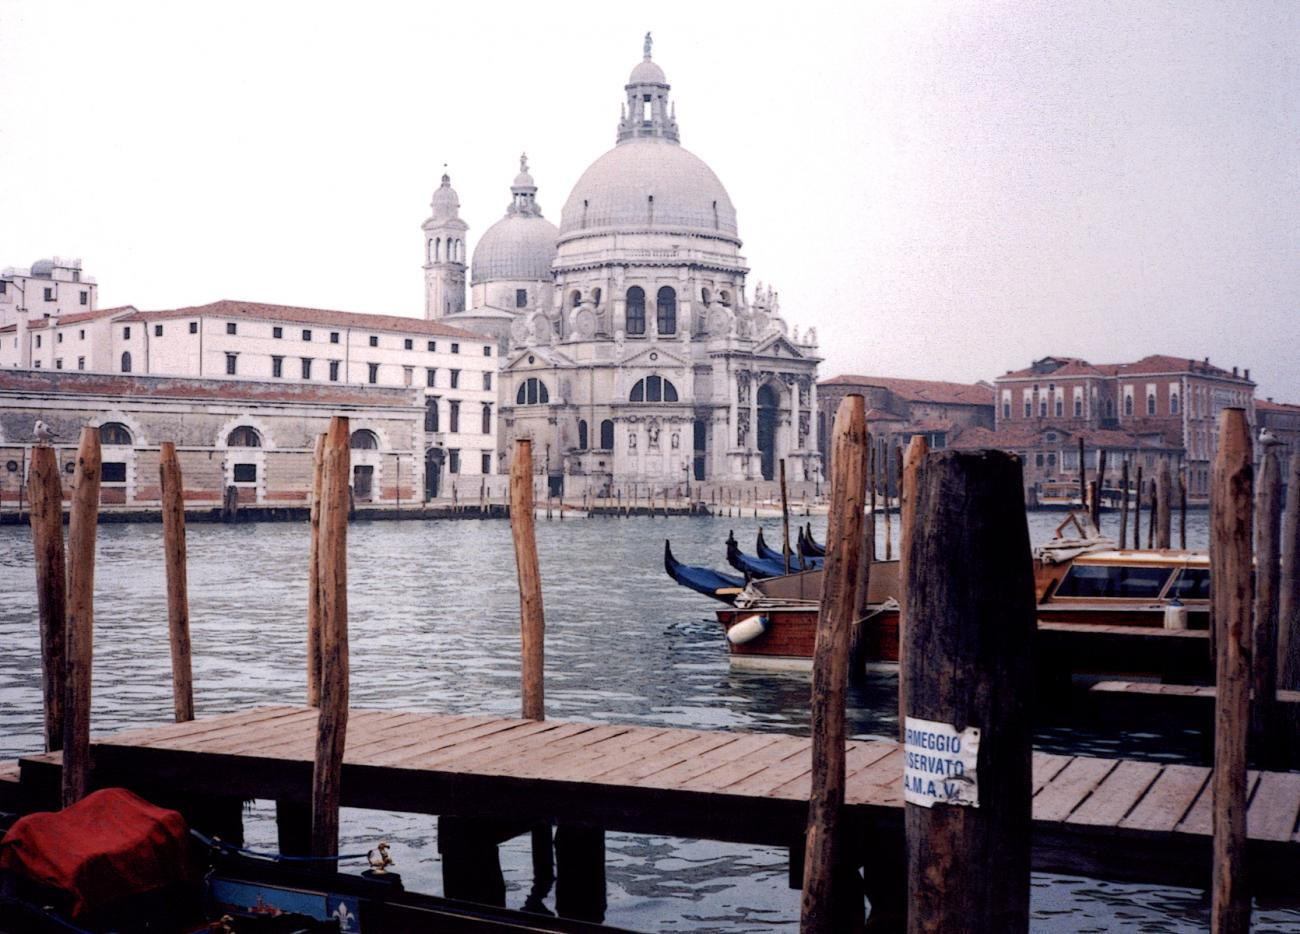 Docks in Venice with basilica in background.